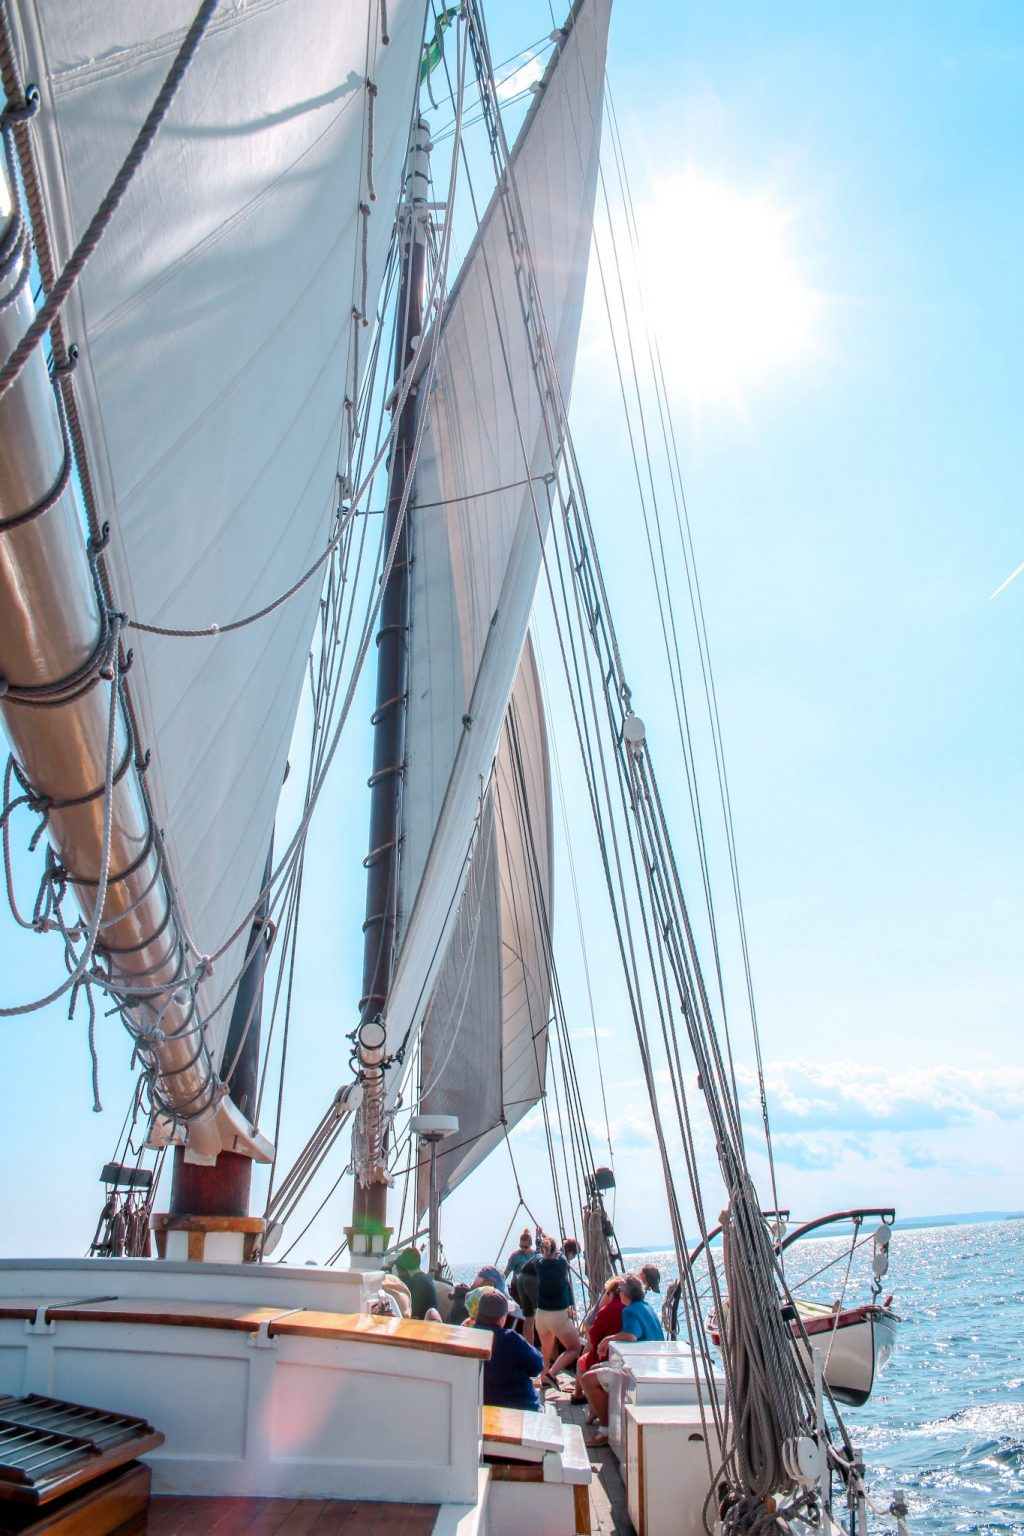 Maine Windjammer Cruise - 20 tips for a successful cruise and what to pack!